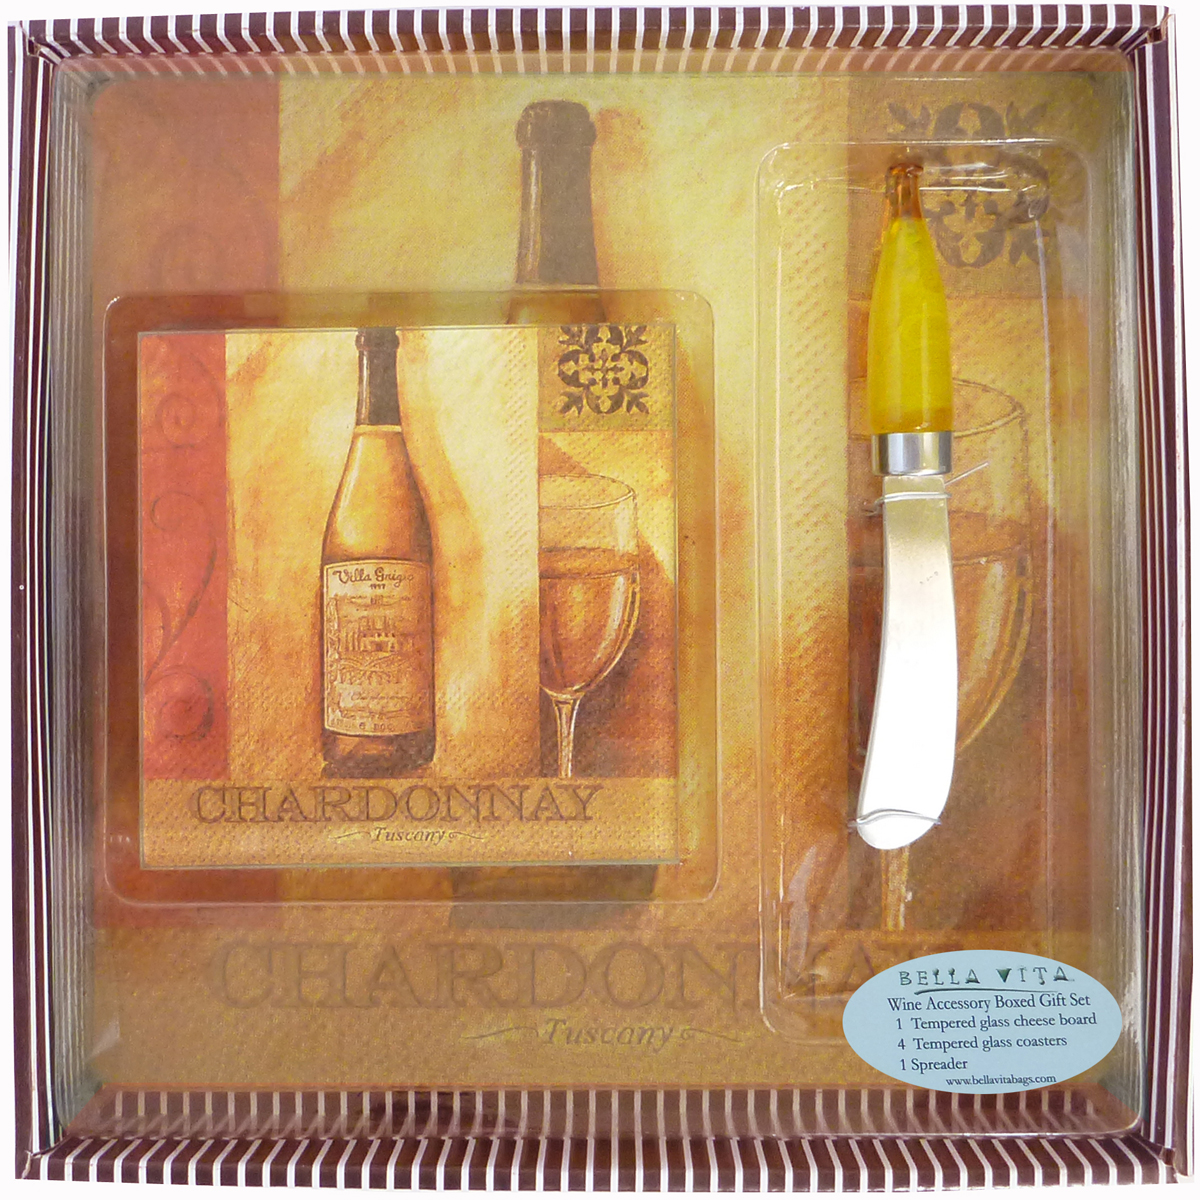 BGS Chardonnay- Boxed Gift Set